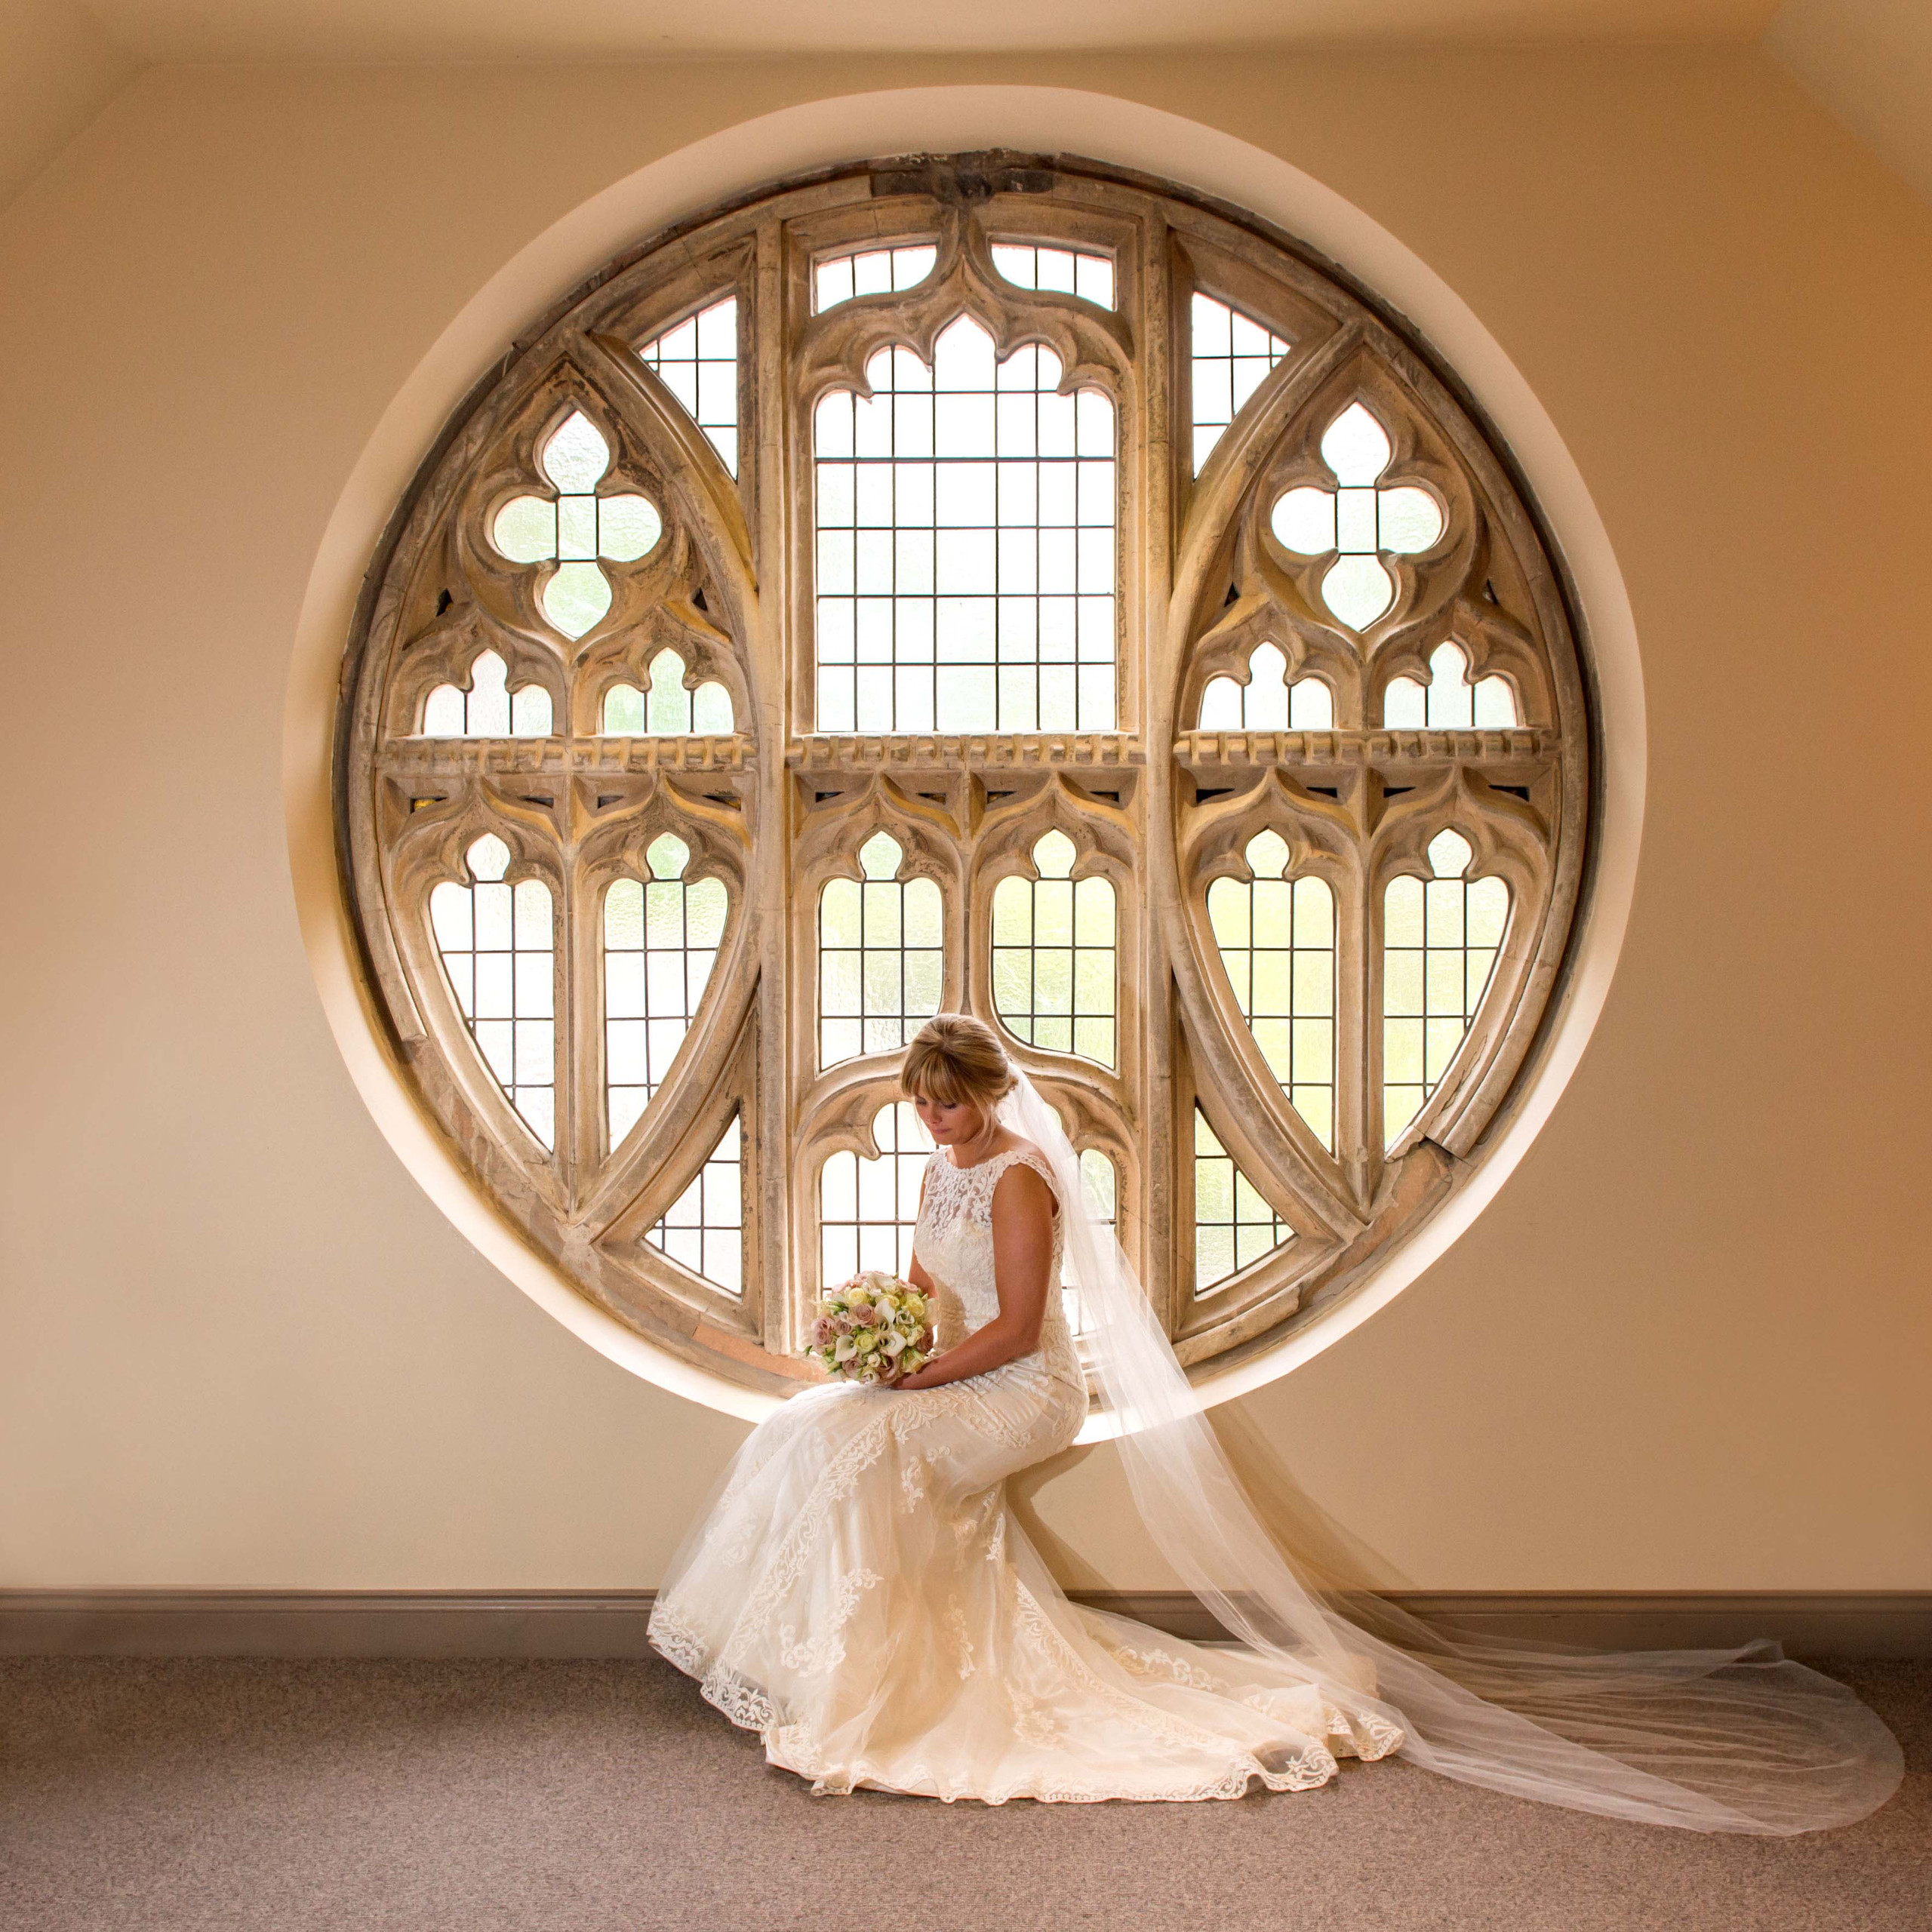 Stunning photograph of bride holding bouquet sat at circular round window at Ellingham Hall wedding venue in Northumberland